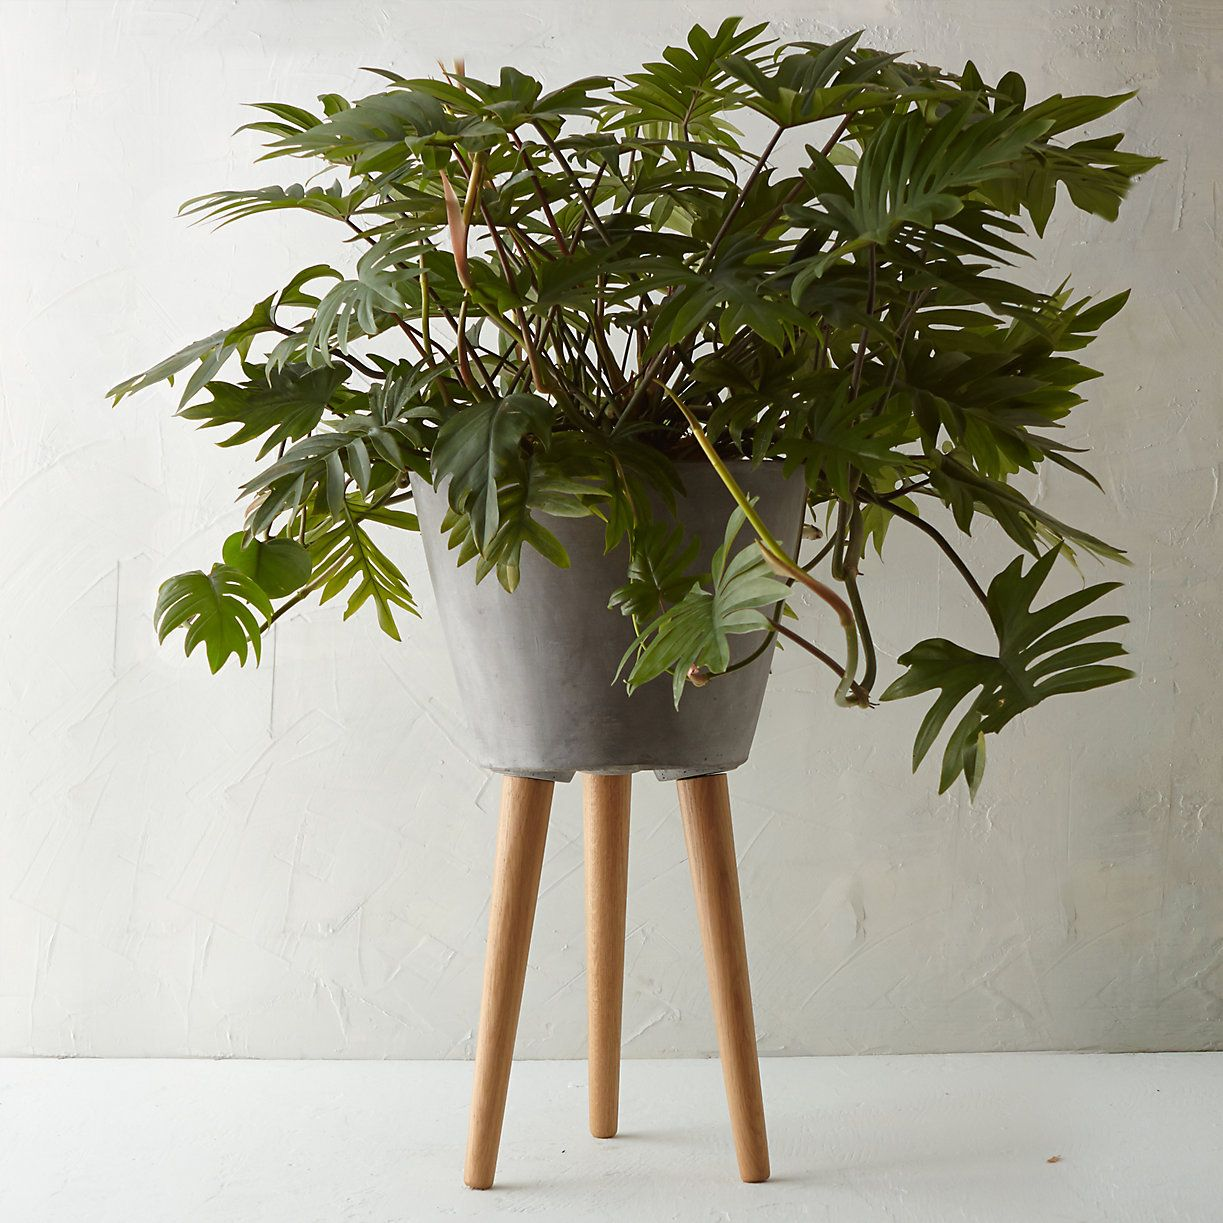 Tapered Wooden Leg Pot Plant Decor Indoor Planters Plant Stand Indoor